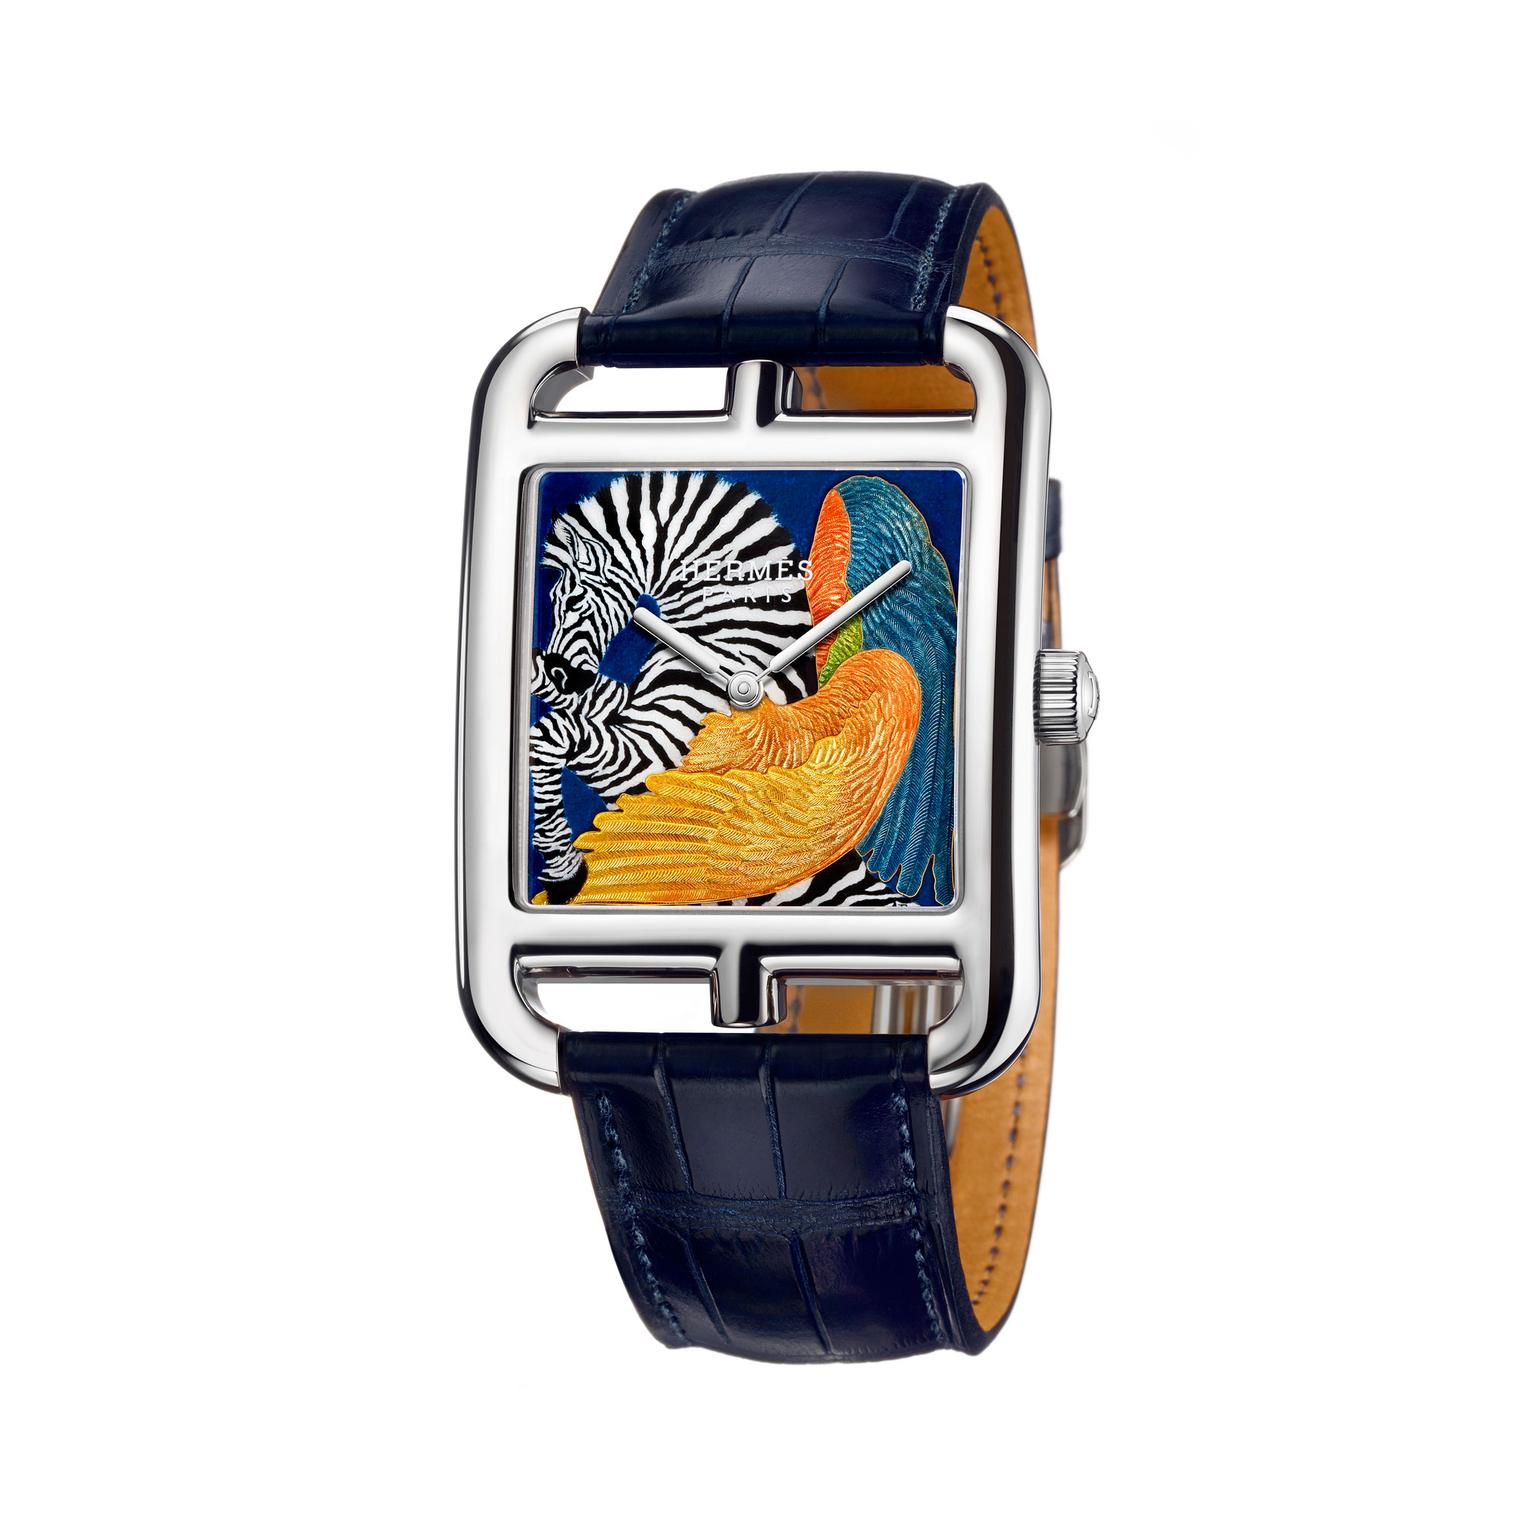 Hermes Cape Cod Zebra Pegasus watch